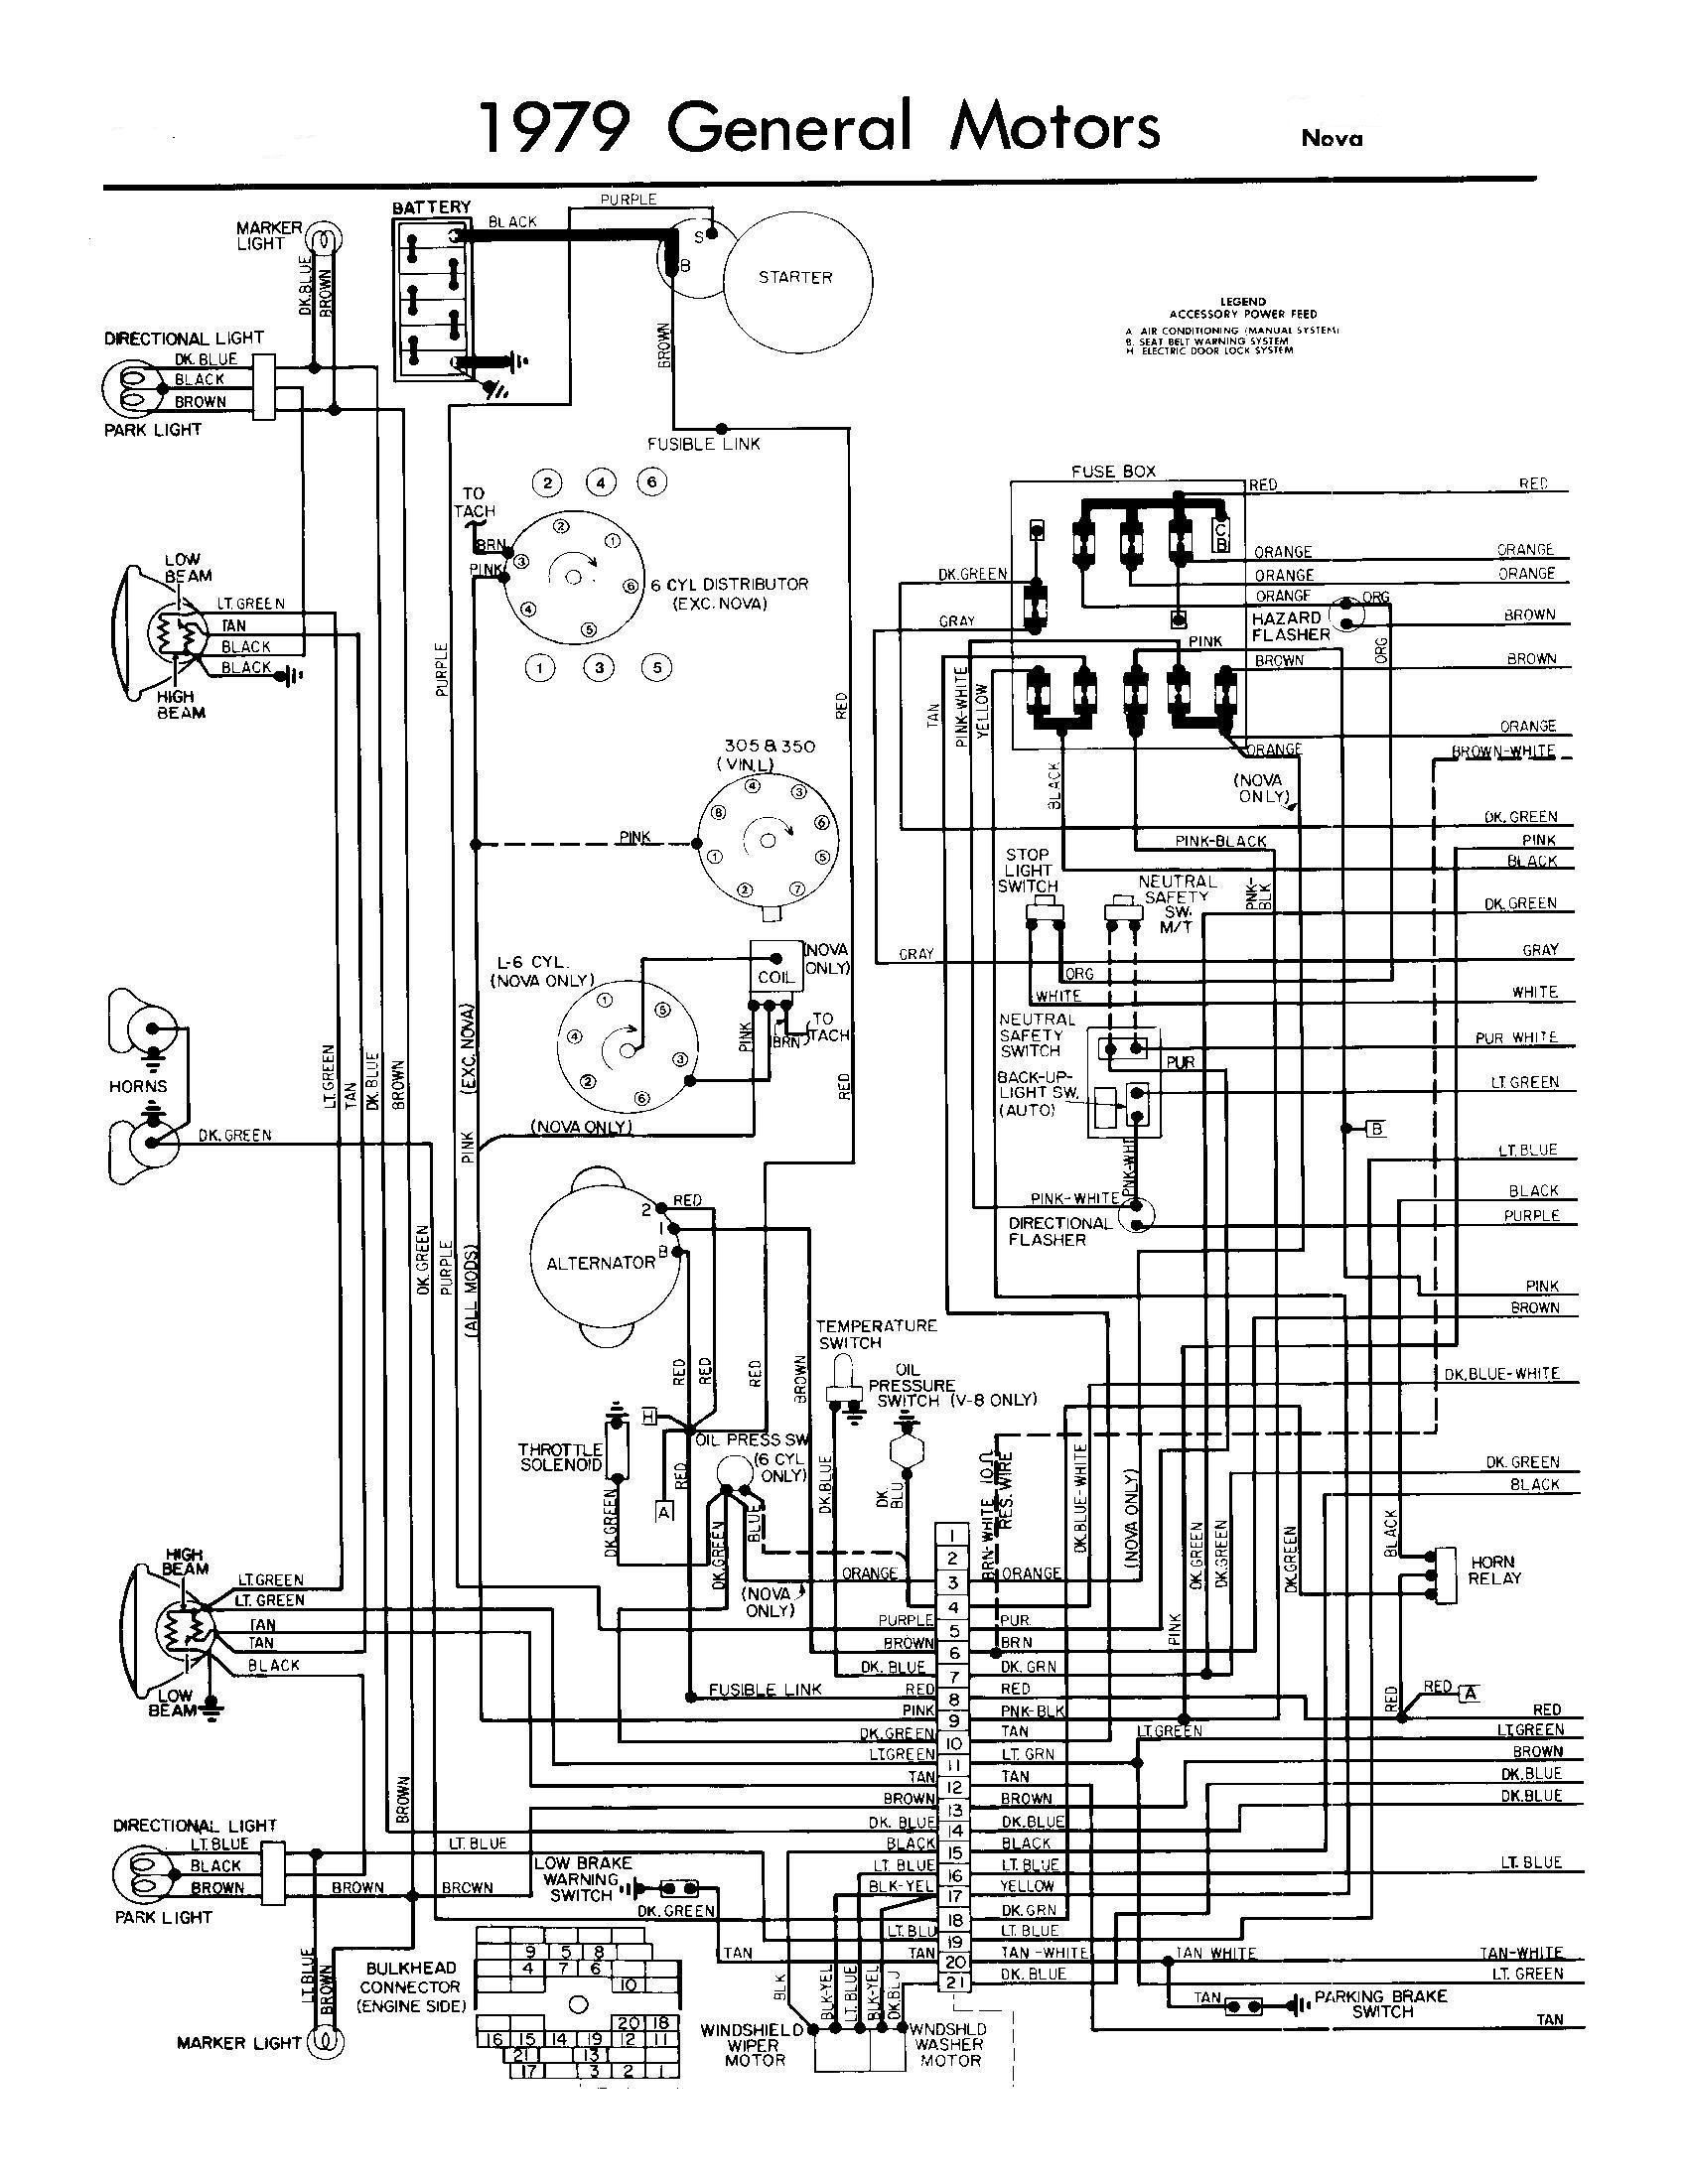 Af D D Bfeba F Db A on 1959 Chevy Headlight Wiring Diagram